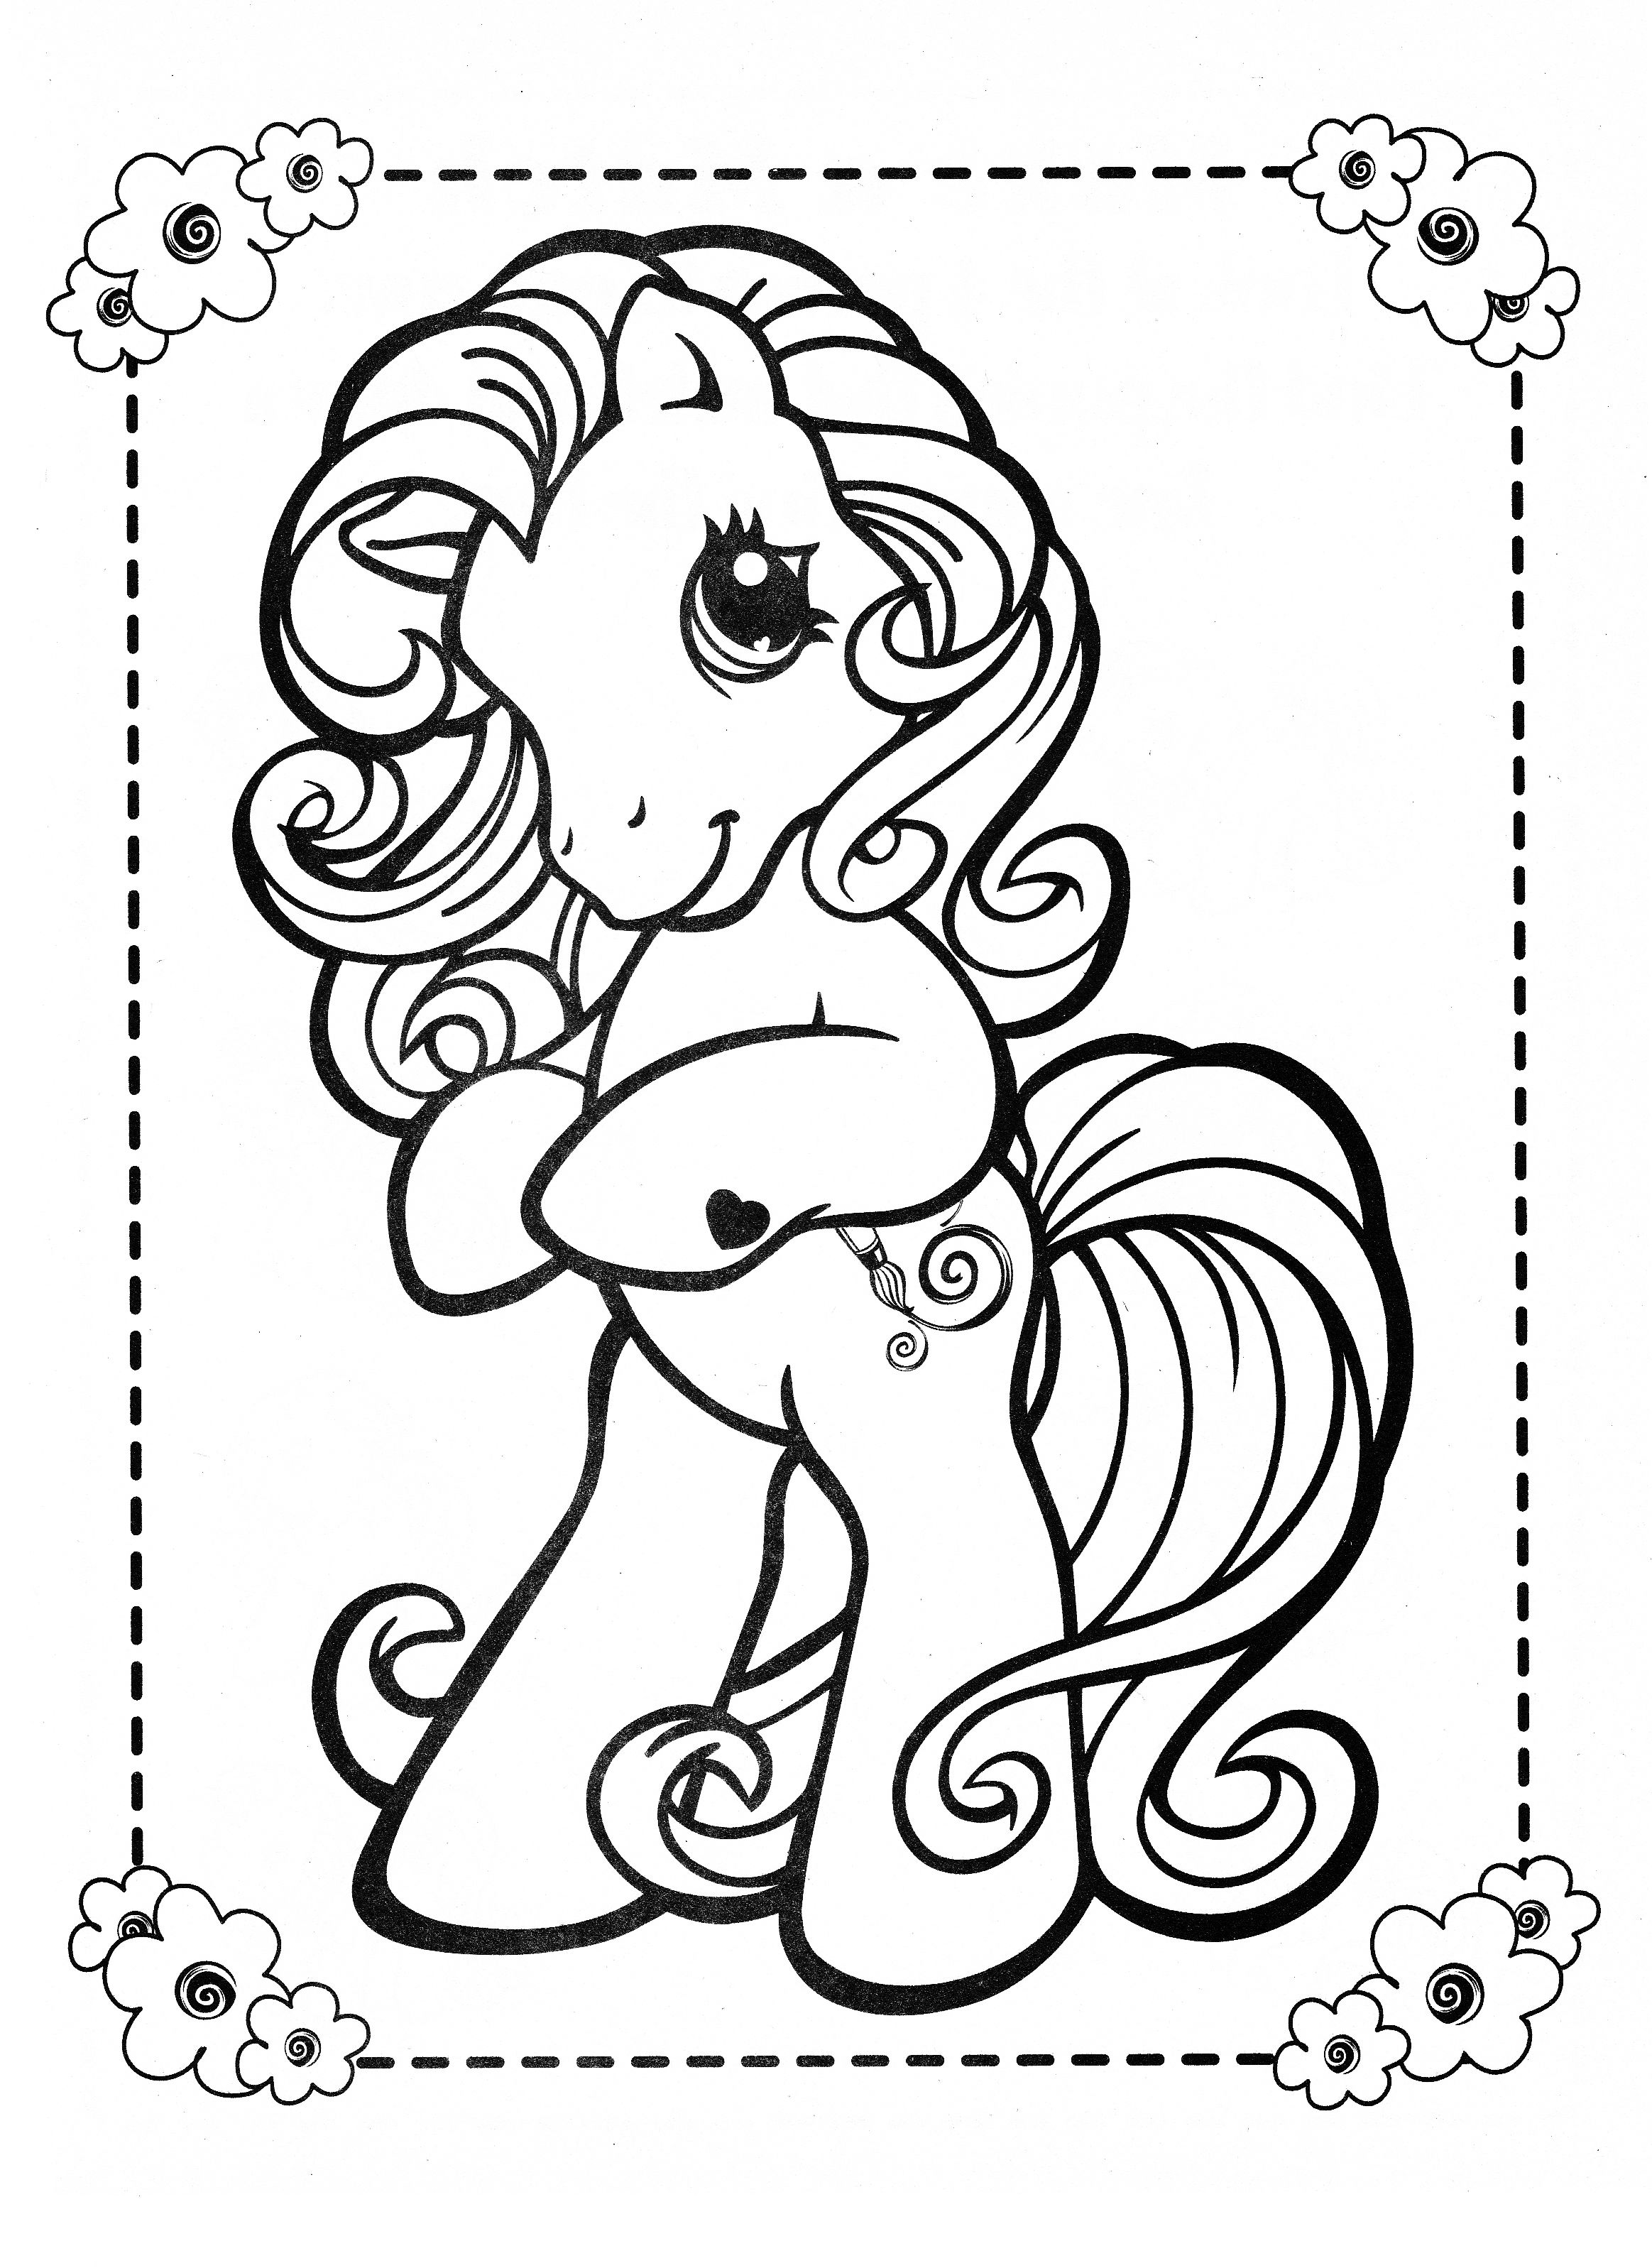 Ausmalbilder Zum Ausdrucken My Little Pony : My Little Pony Coloring Page Mlp Toola Roola Coloring Pages